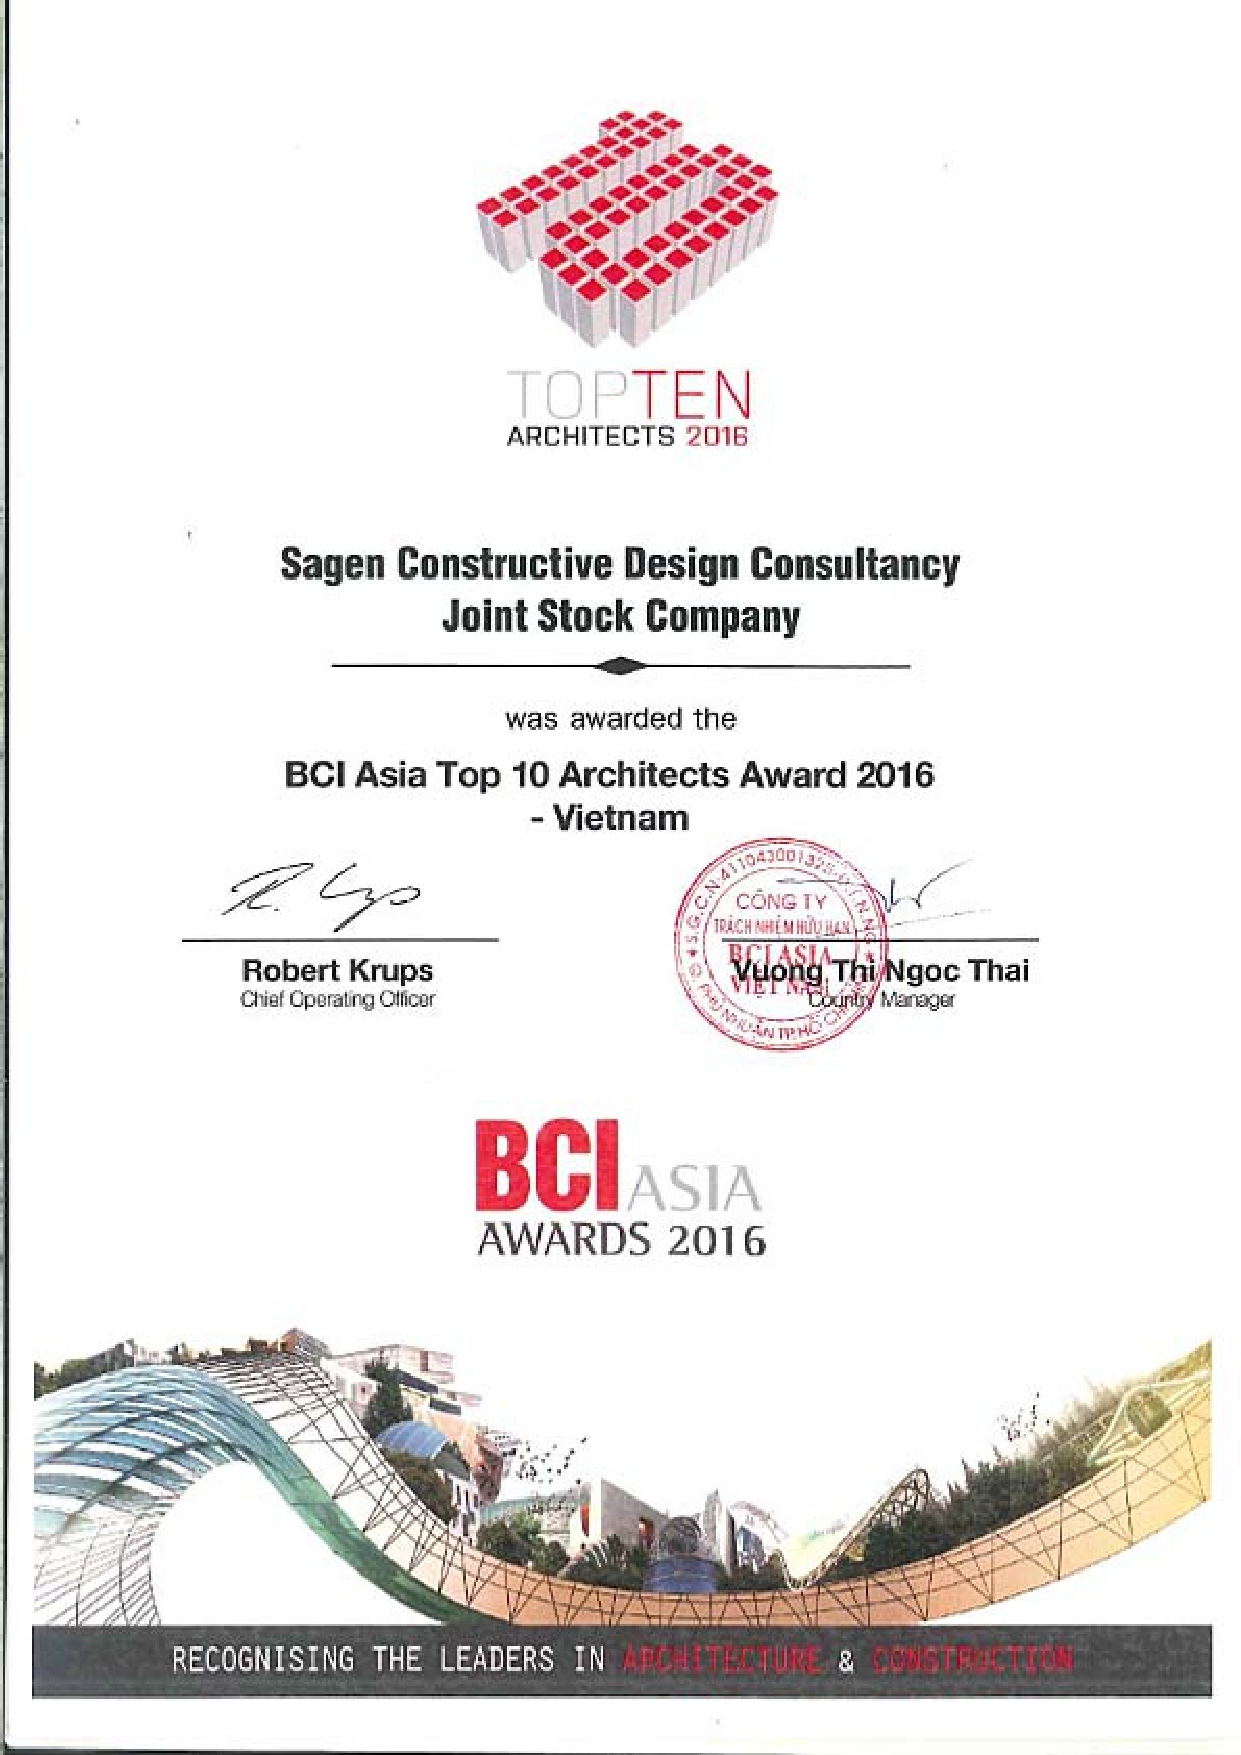 BCI ASIA TOP TEN ARCHITECTS 2015 - 2016